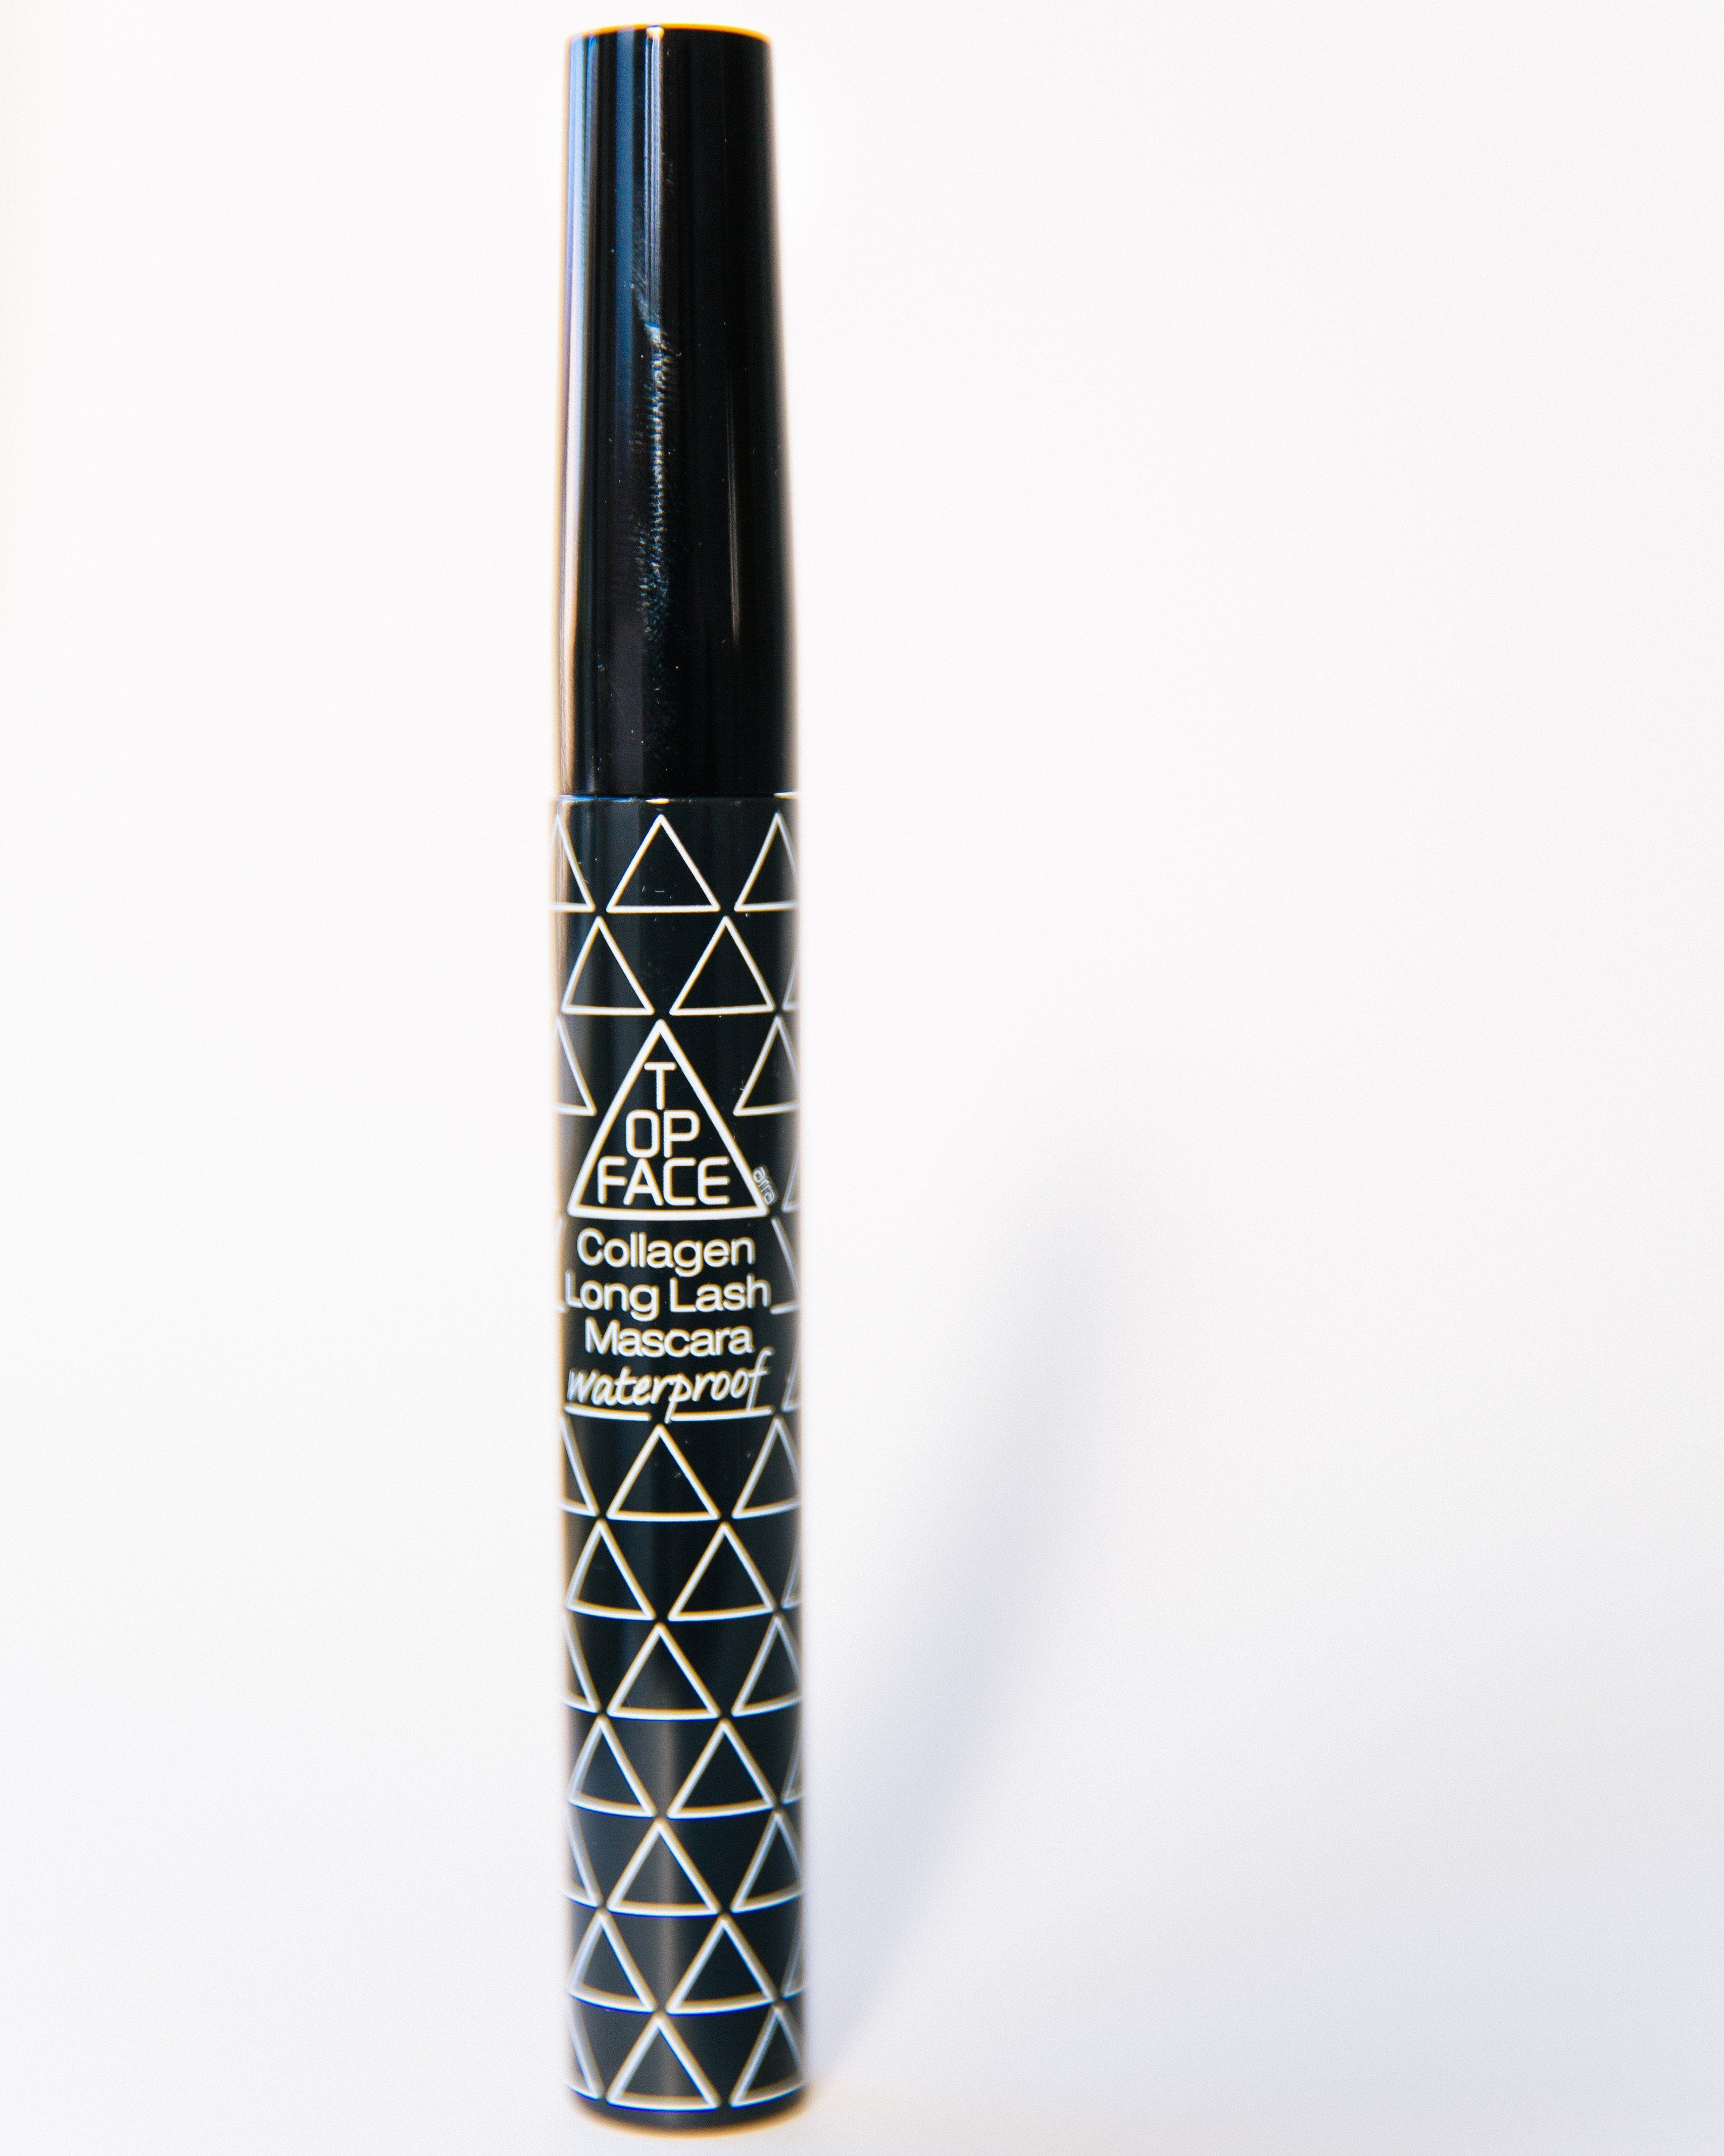 64690af5261 Not just your average mascara! This black waterproof mascara is infused  with goodness of collagen for our lashes to keep them healthy and strong.